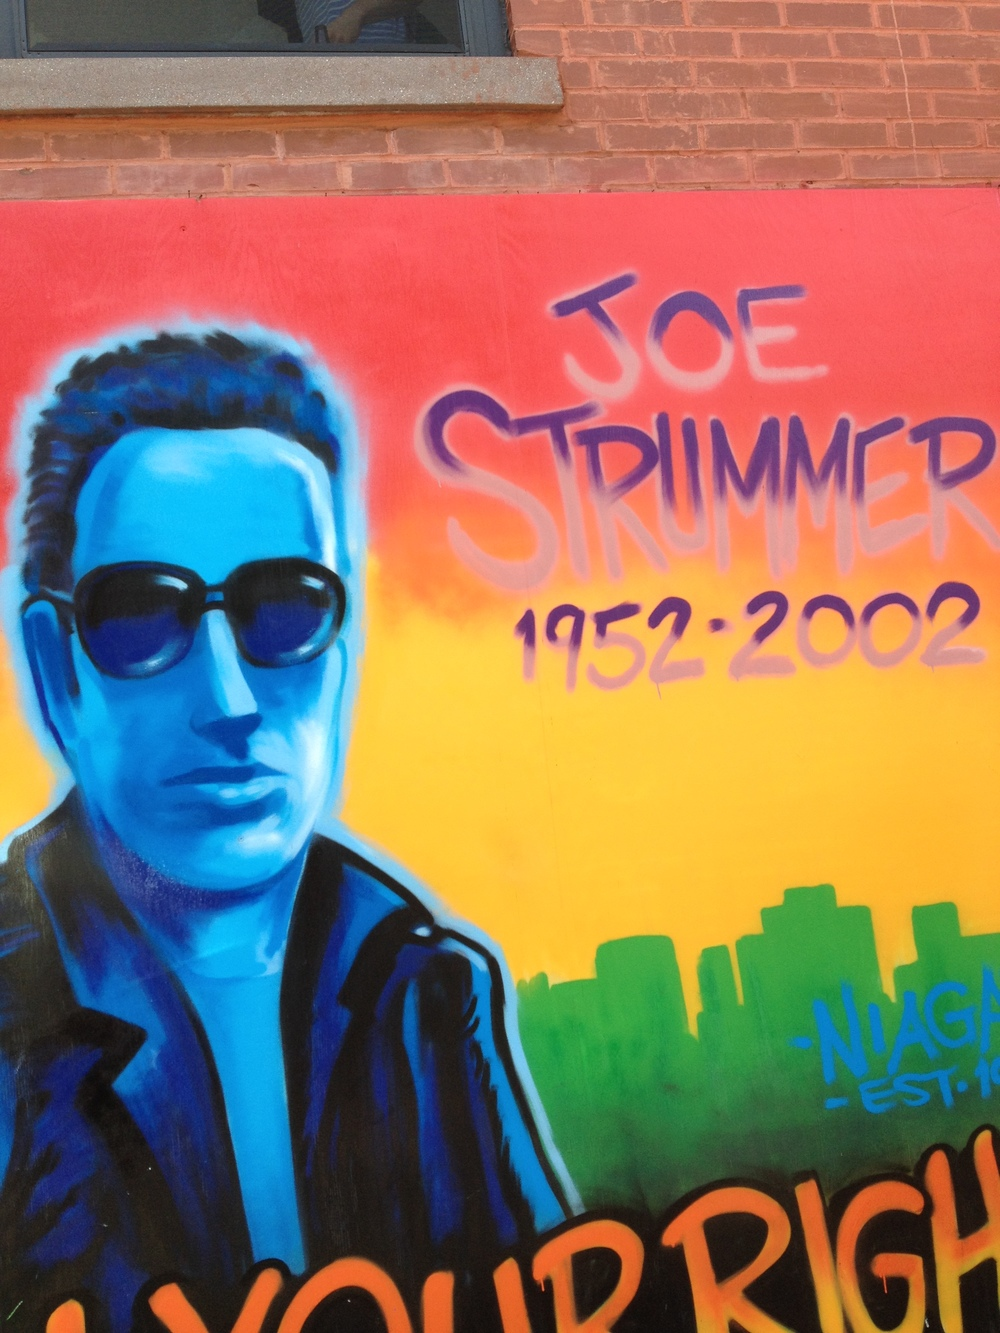 Joe Strummer   mural. This is its third incarnation in this location